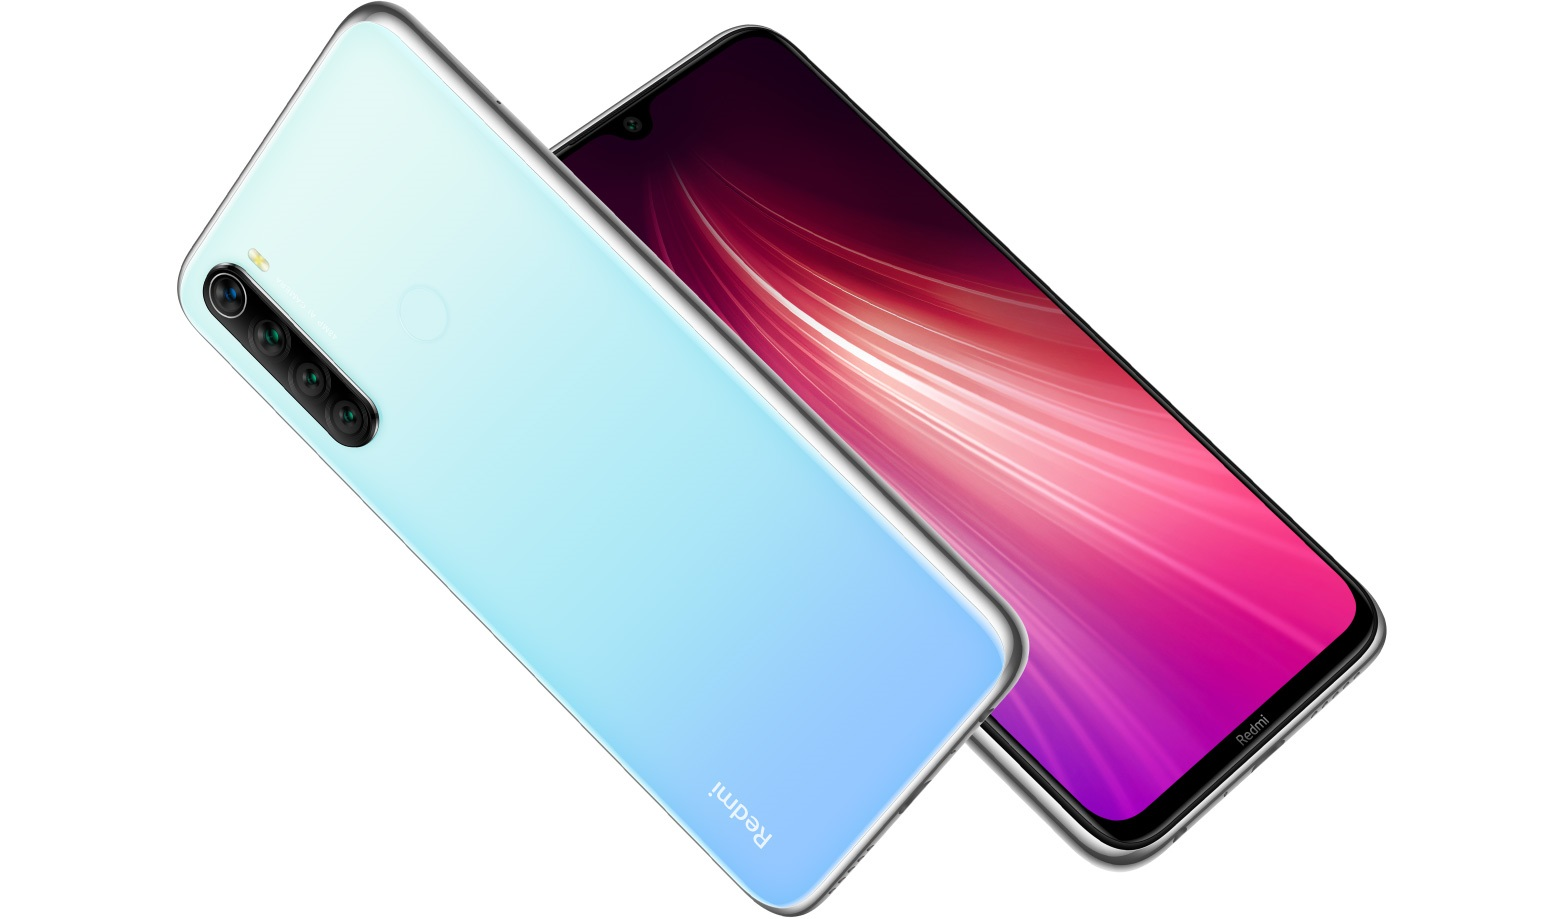 smartfon Redmi Note 8